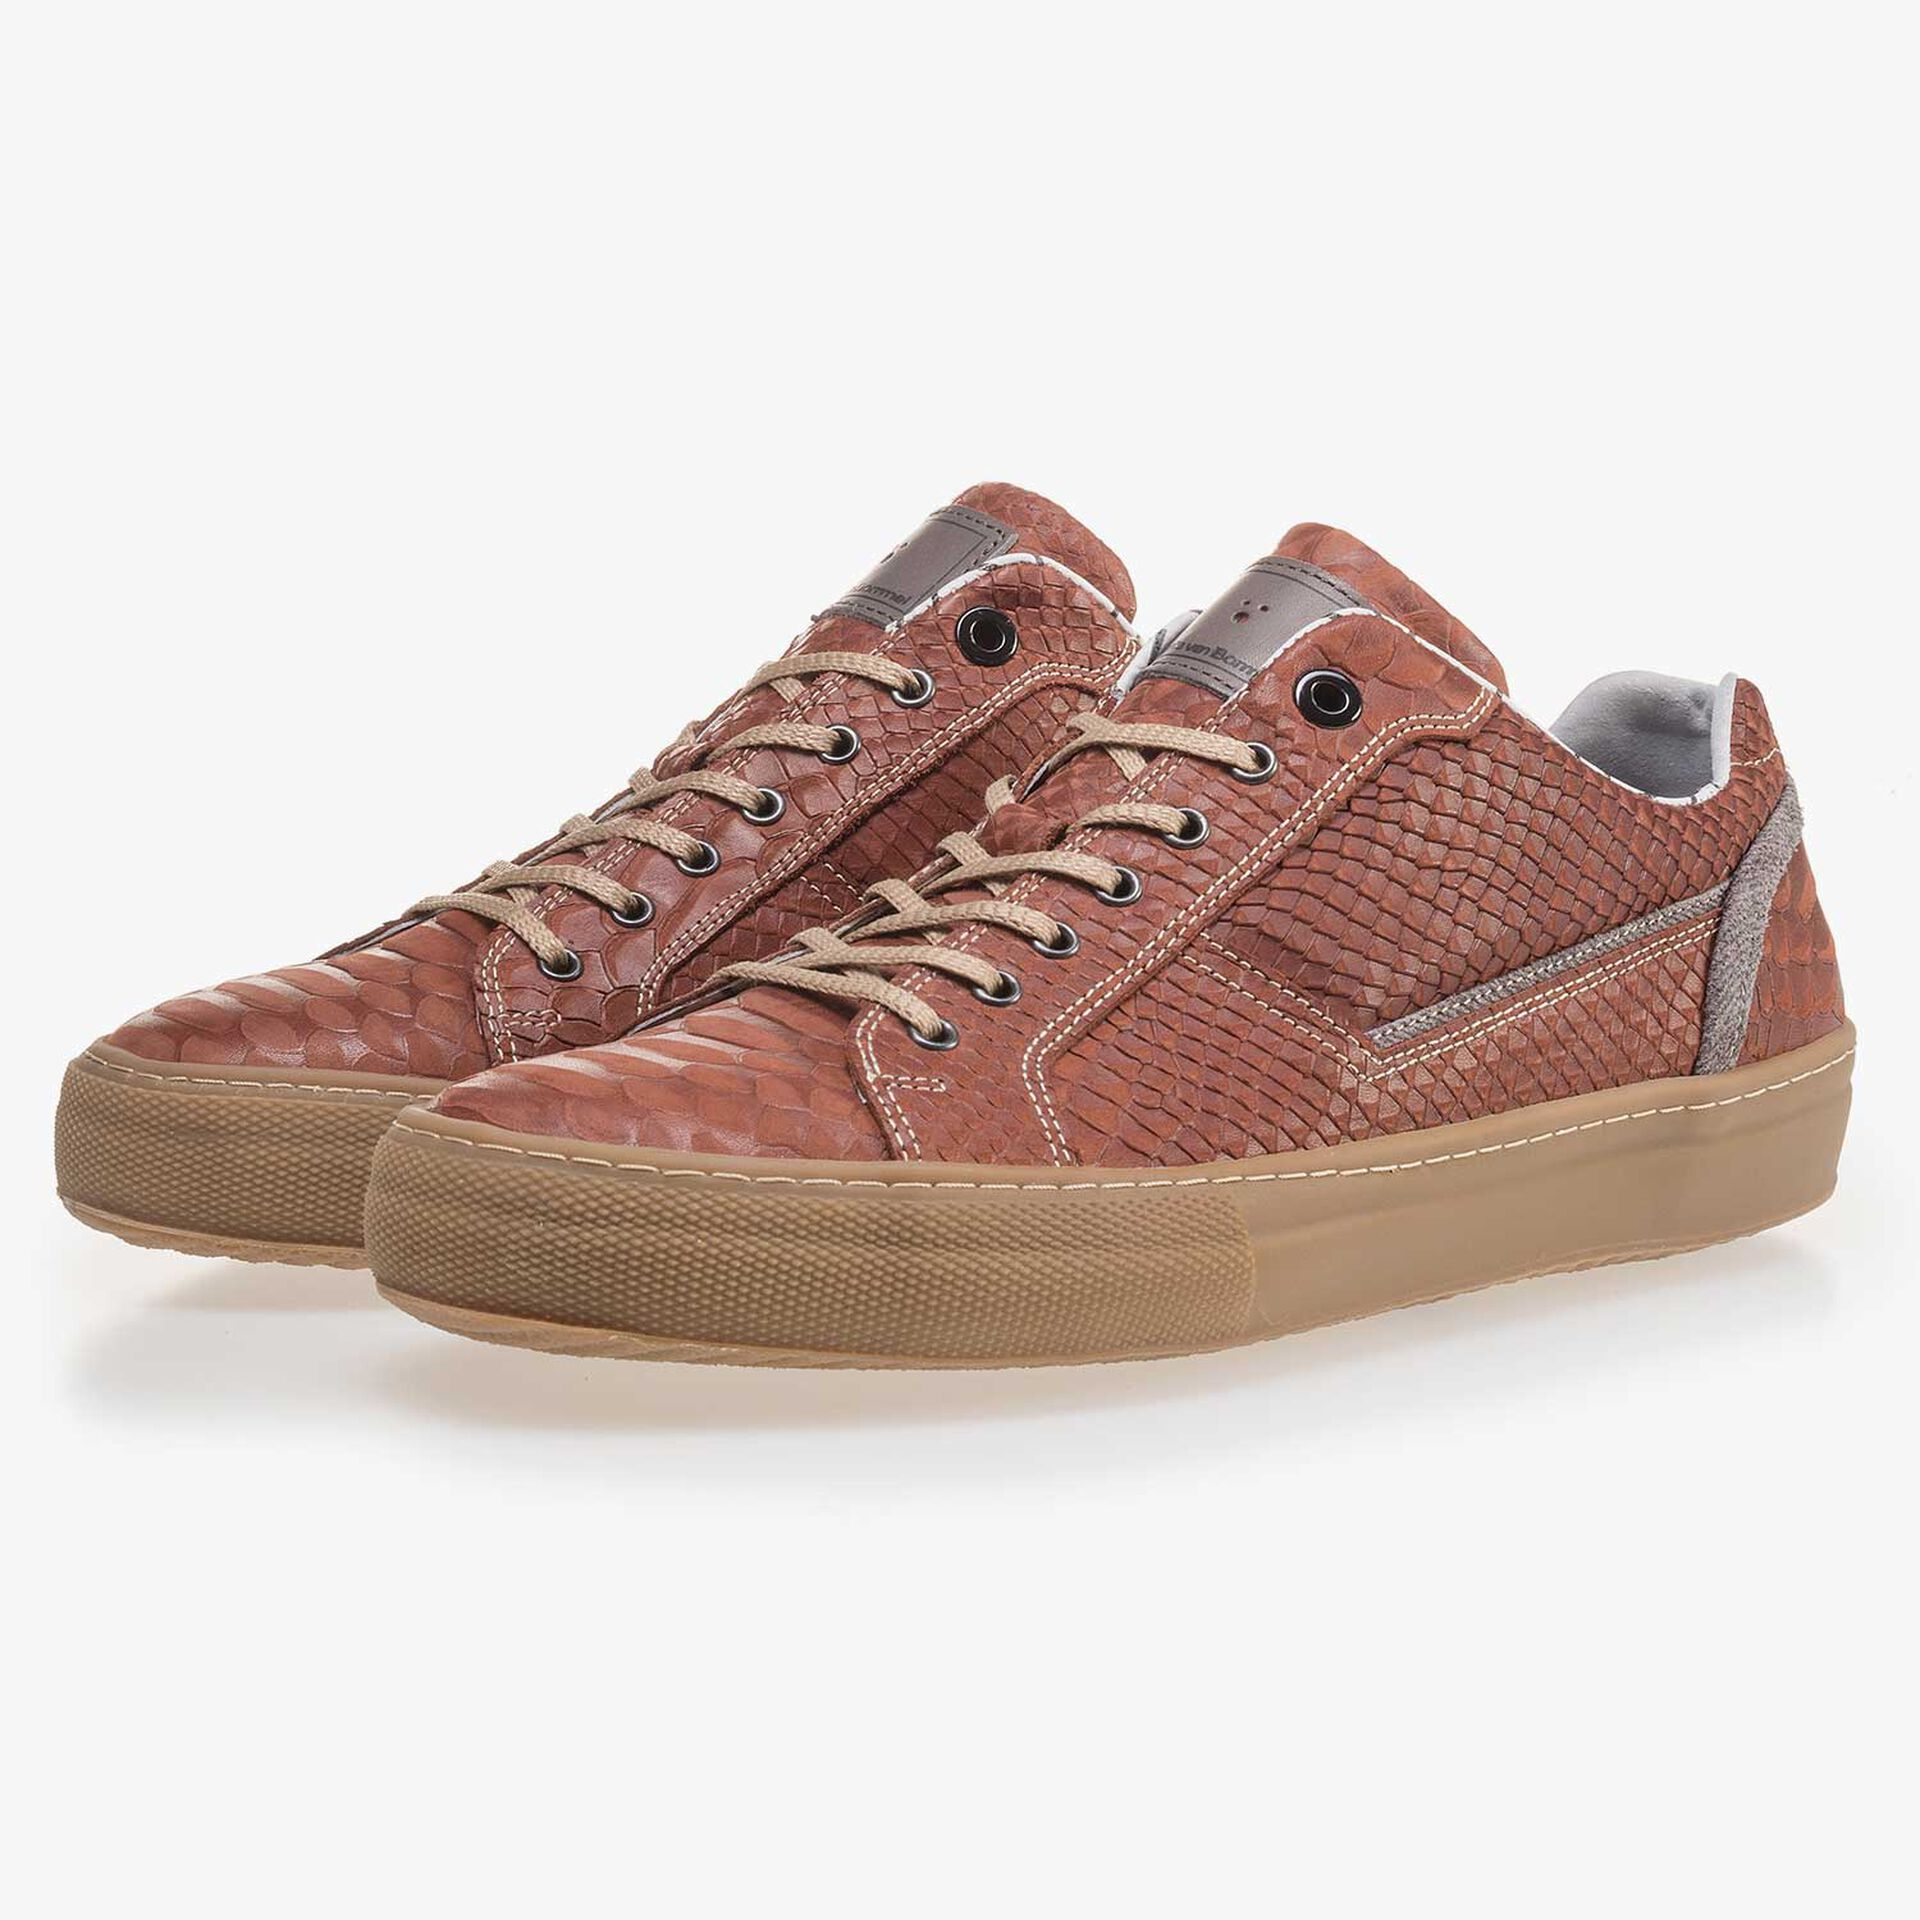 Cognac-coloured leather sneaker with a snake print